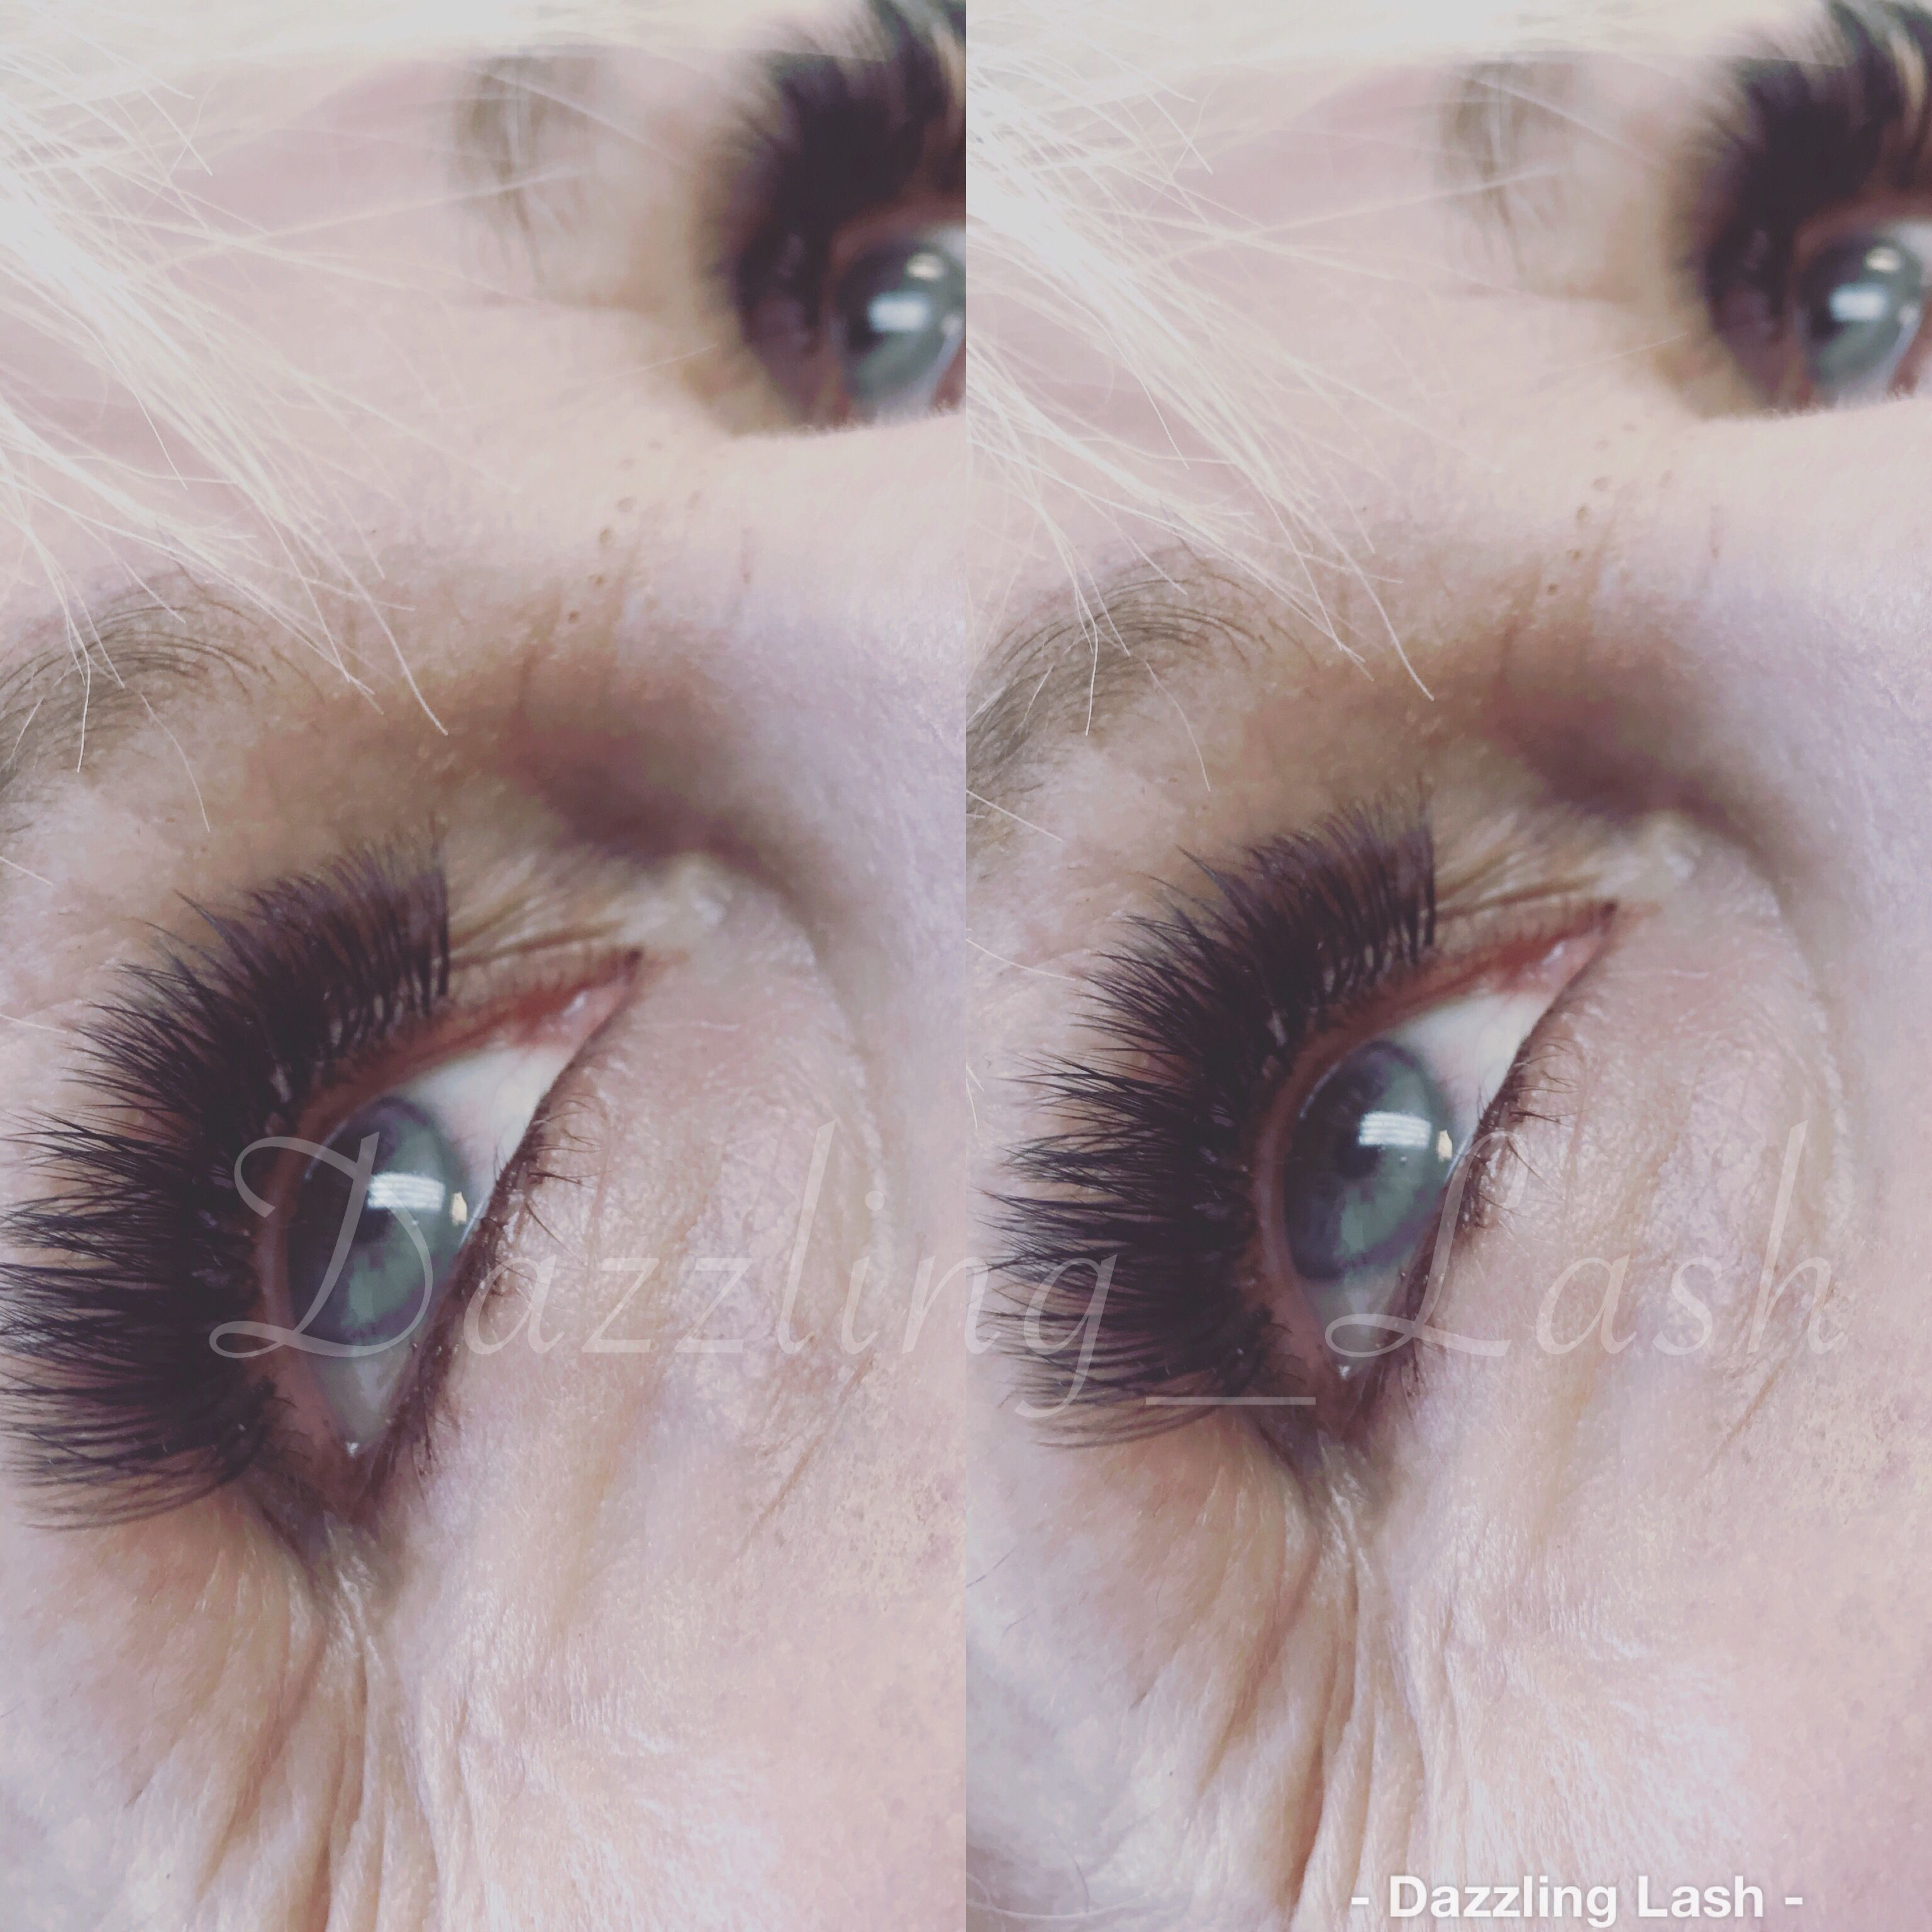 1c1bbcf7e6e Start your day with a great lashes!! Book your appointment now online  www.dazzlinglash.com OR call/text 714-650-0040